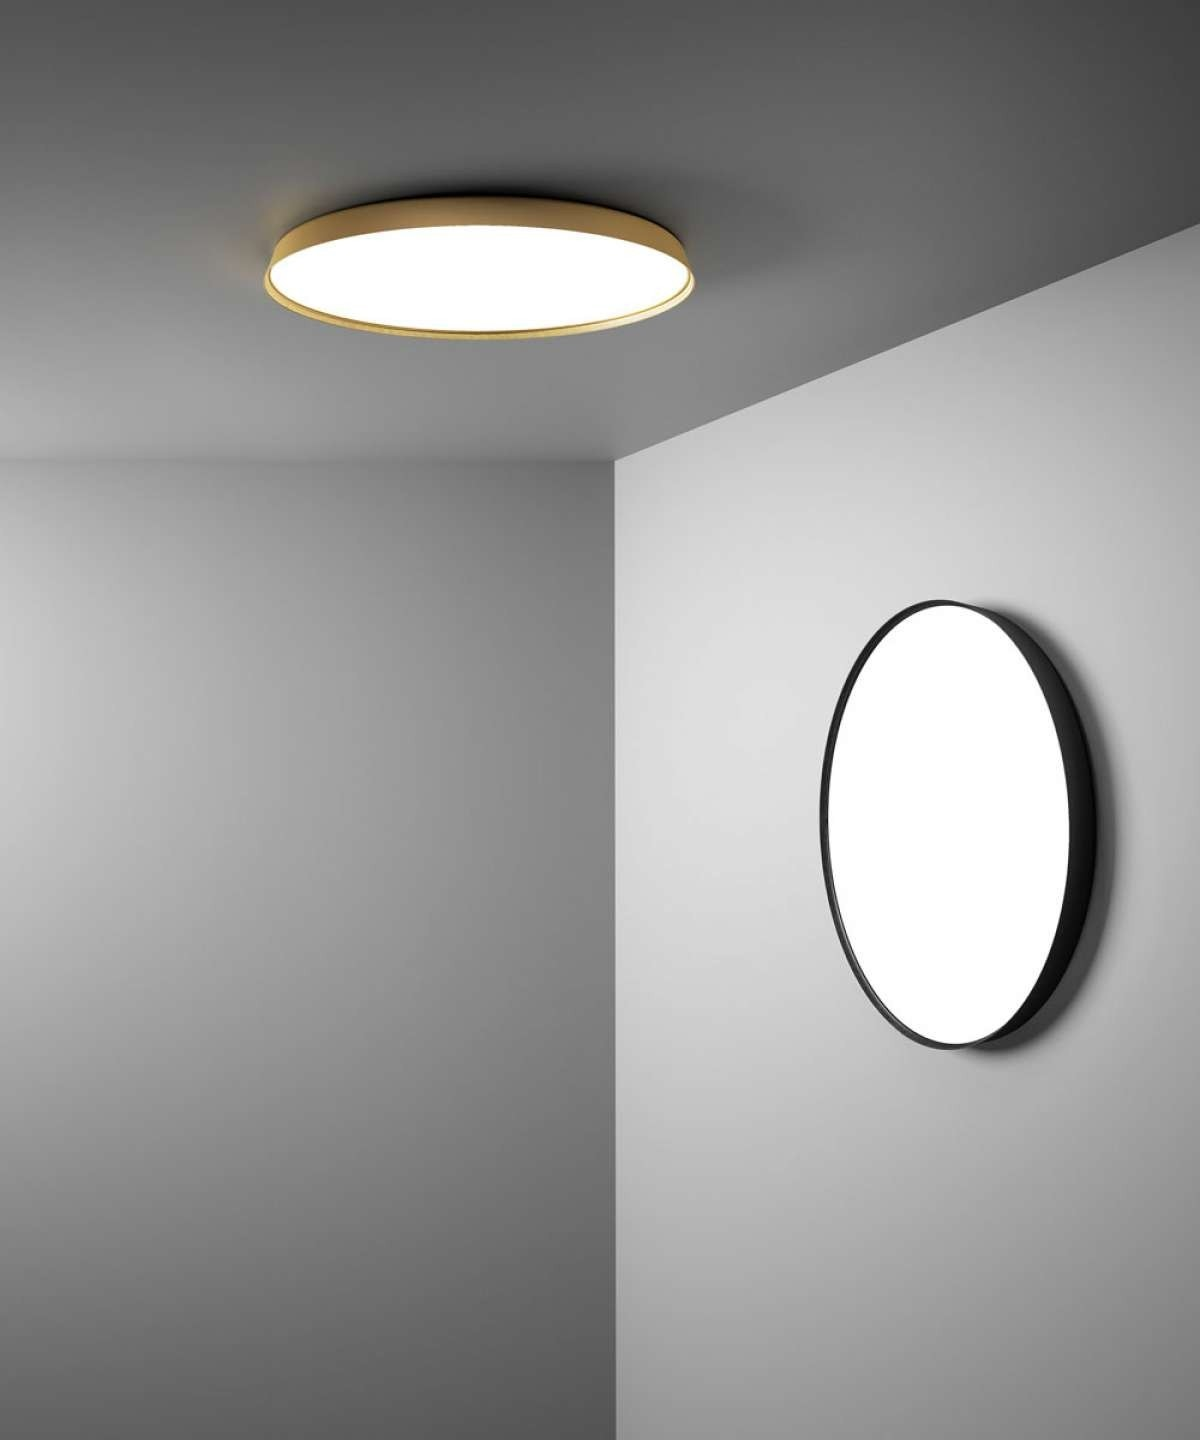 Luceplan D81P Compendium Plate Wall/Ceiling Lamp